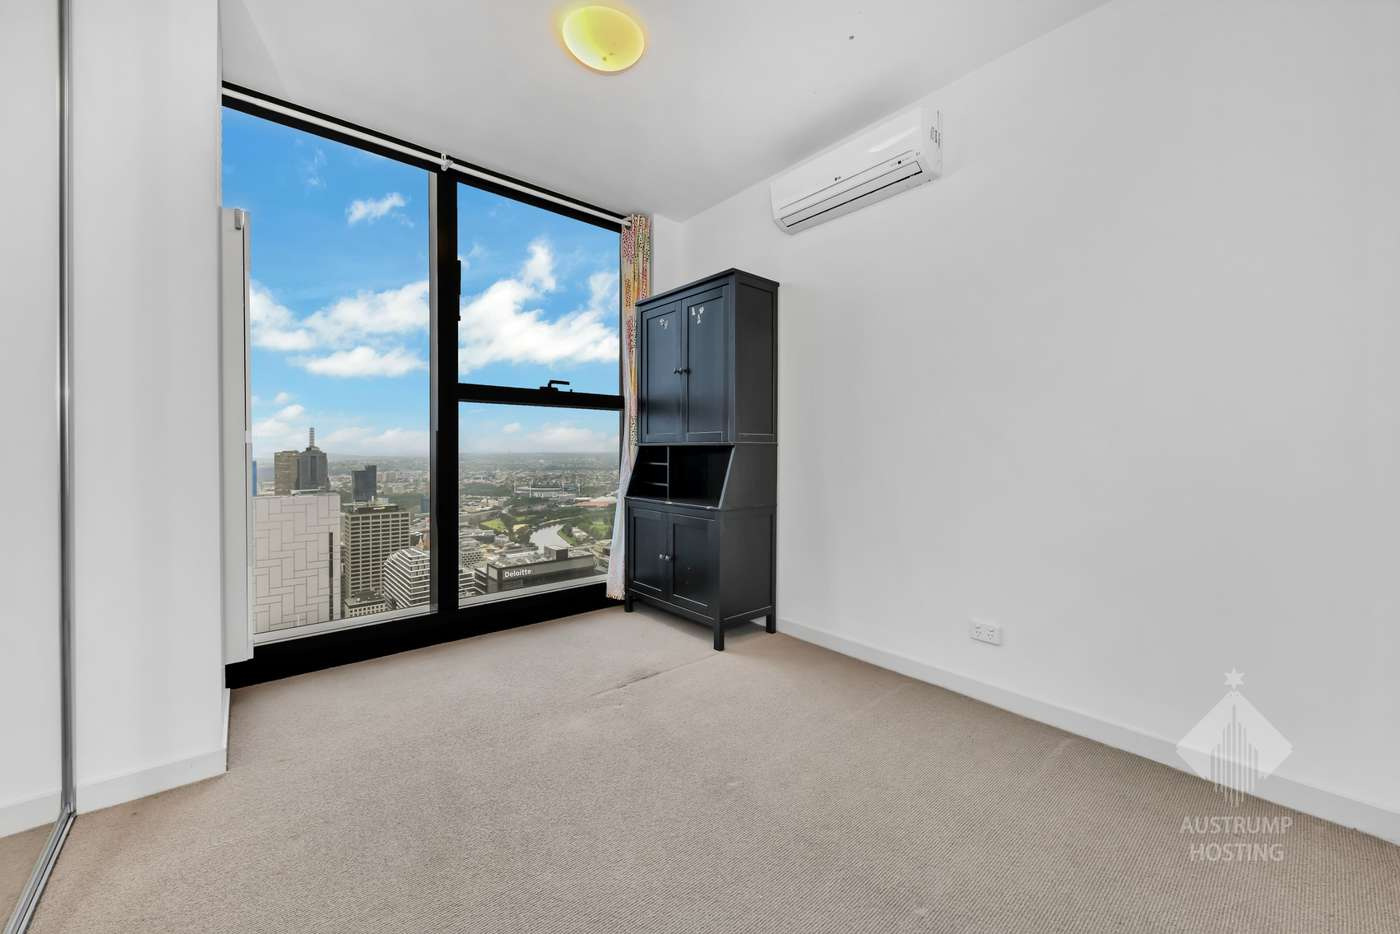 Seventh view of Homely apartment listing, 6506/568 Collins Street, Melbourne VIC 3000